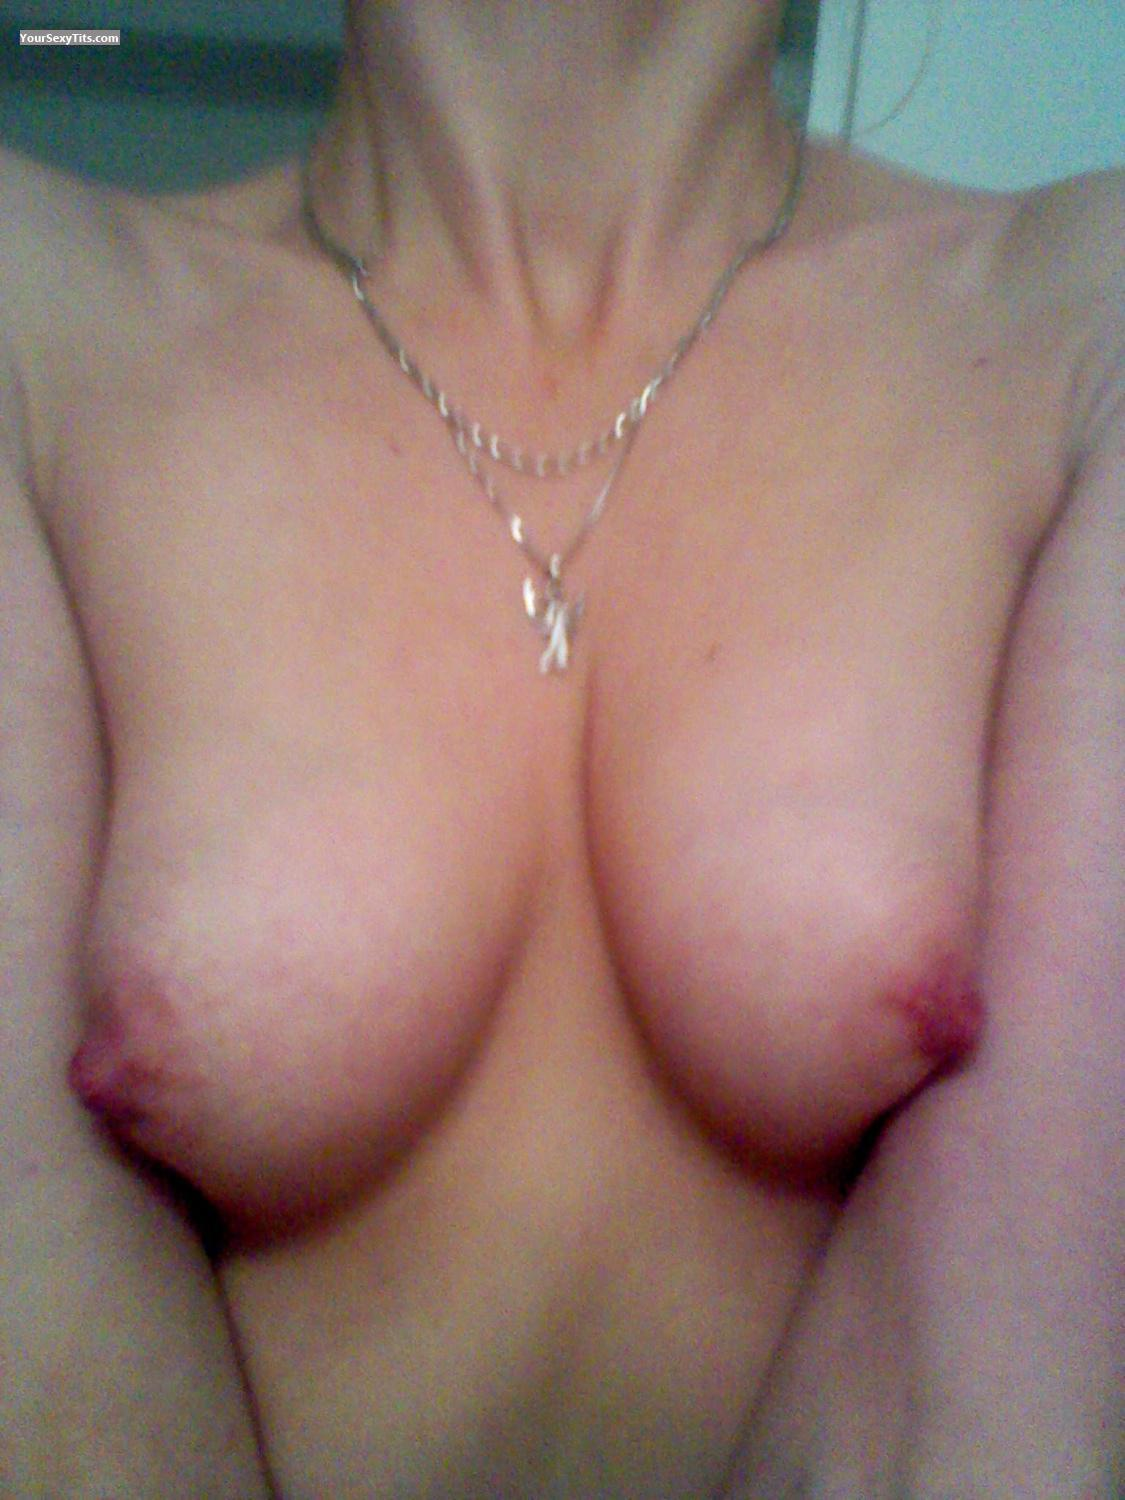 Tit Flash: My Small Tits By IPhone (Selfie) - Me from United States